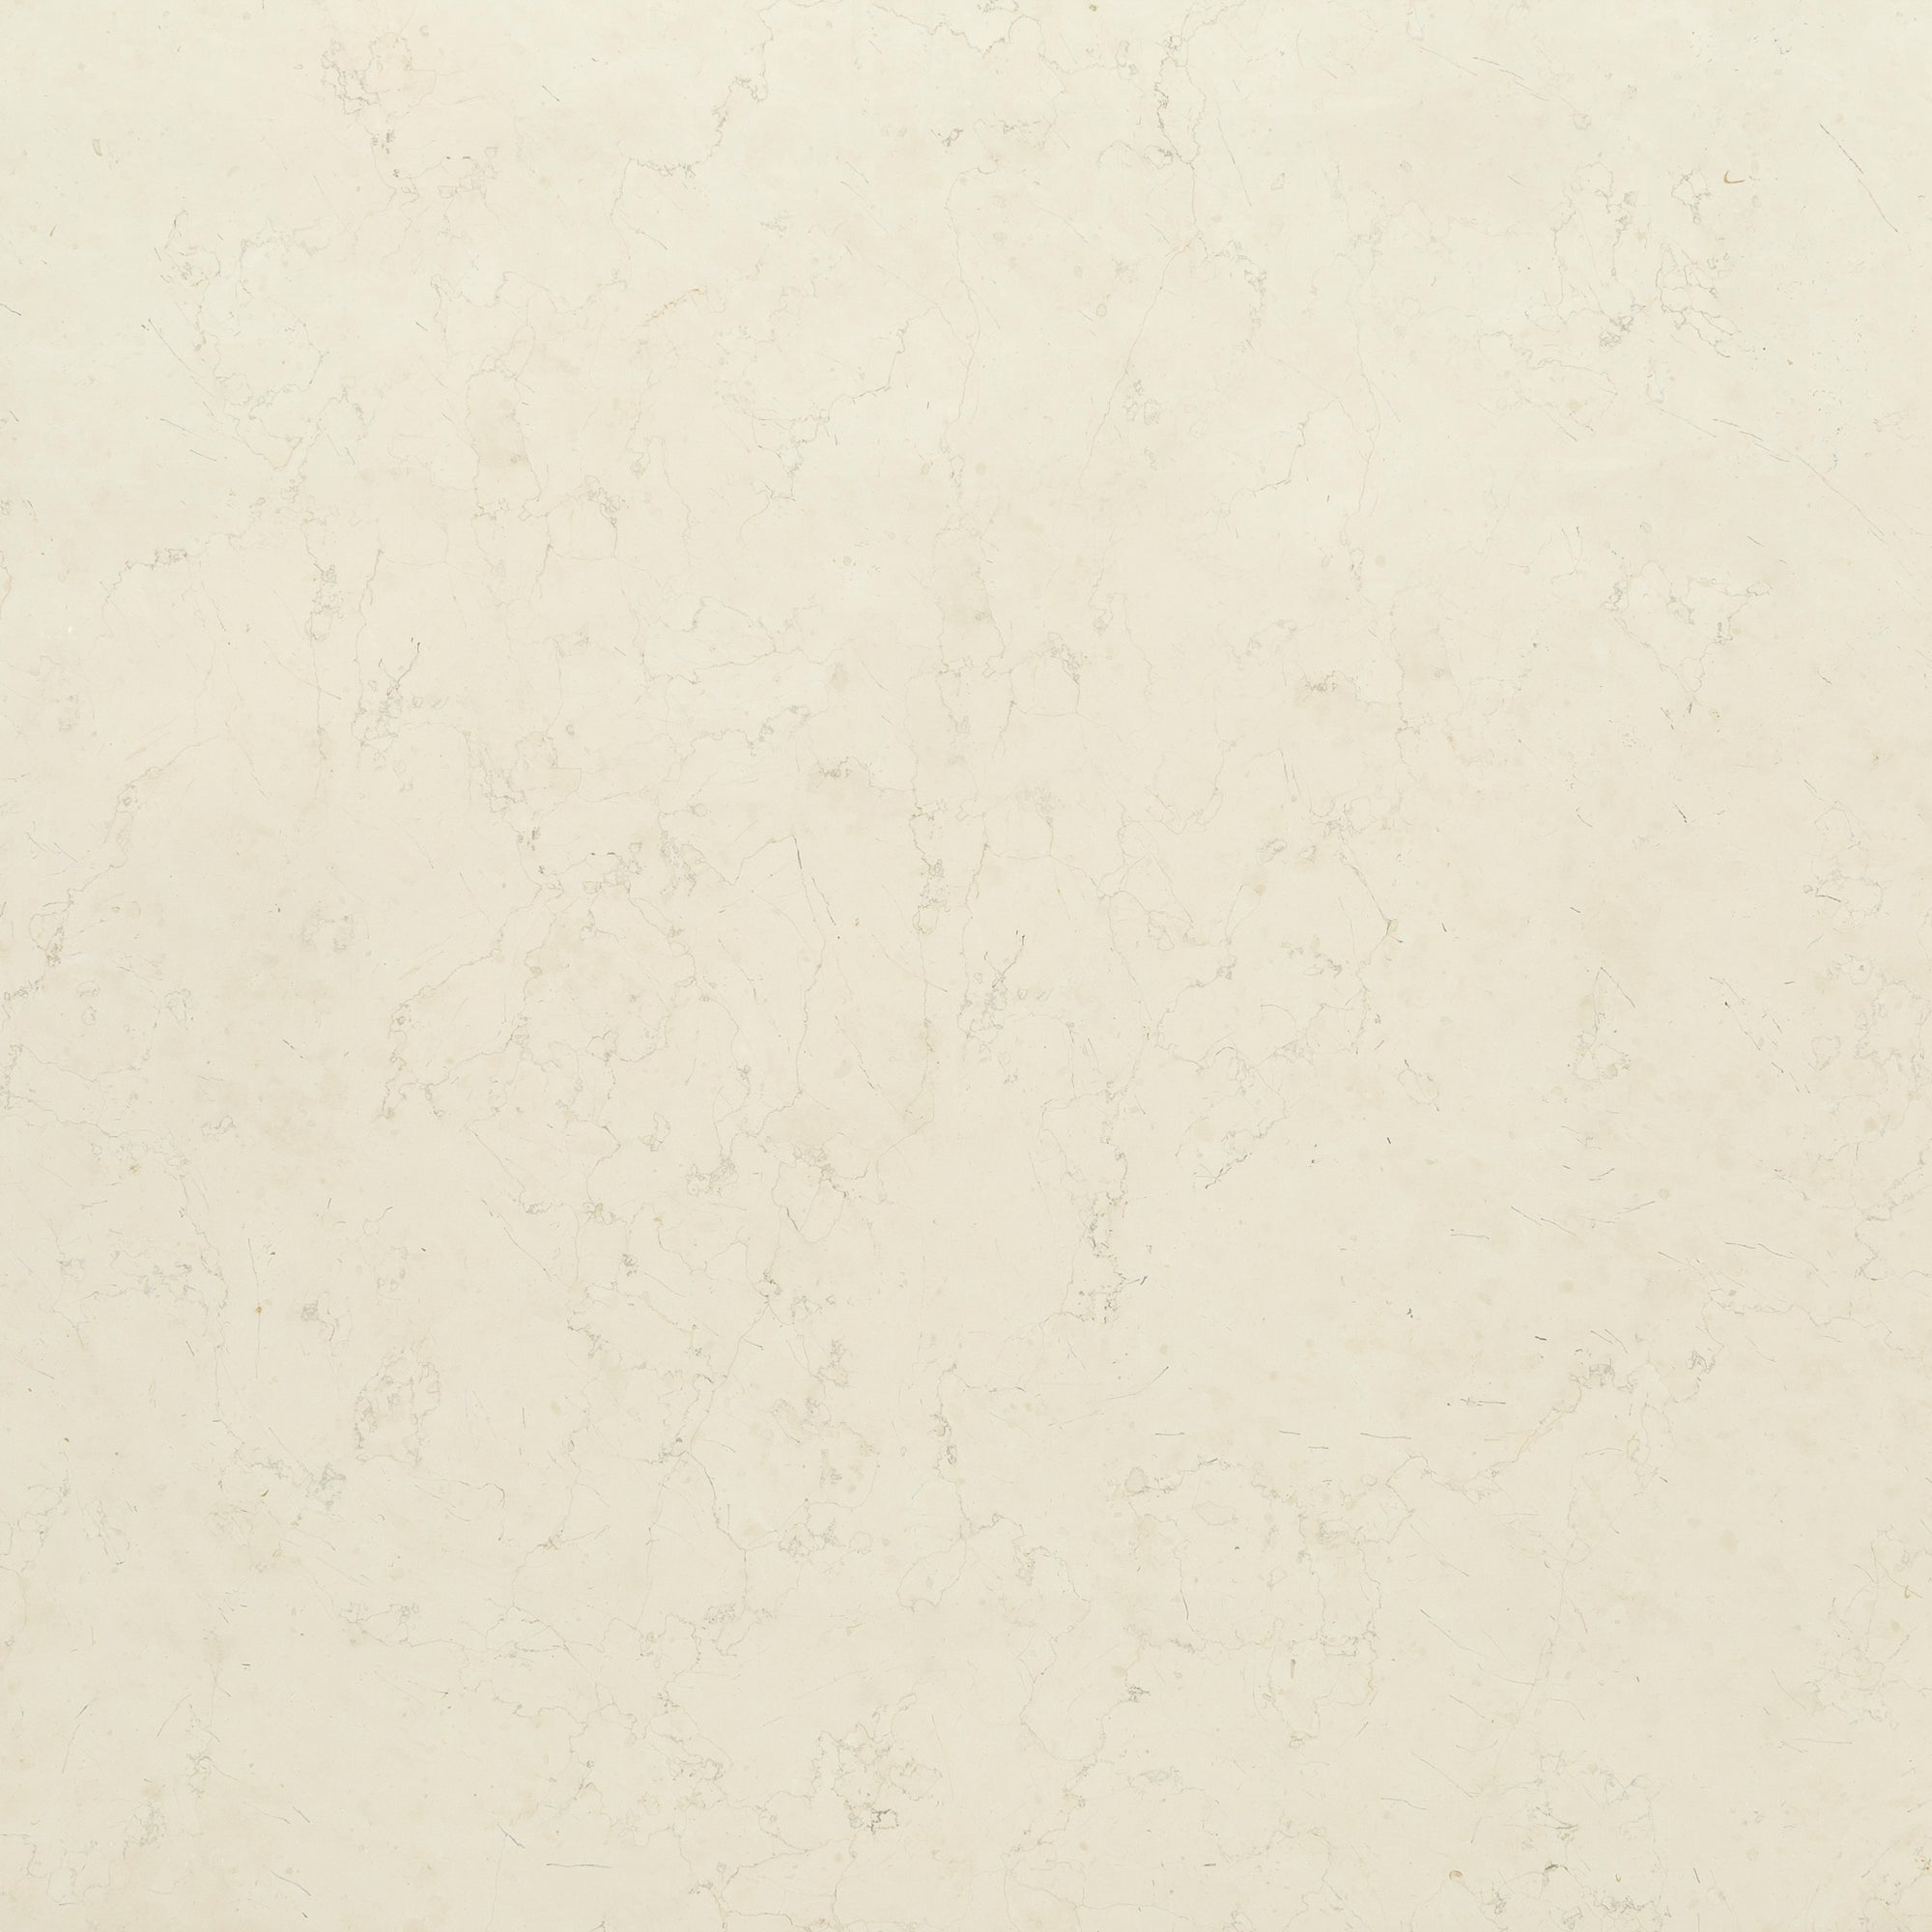 3cm Bianco Antico Marble Swatch Card  Polished Samples Slab product photo